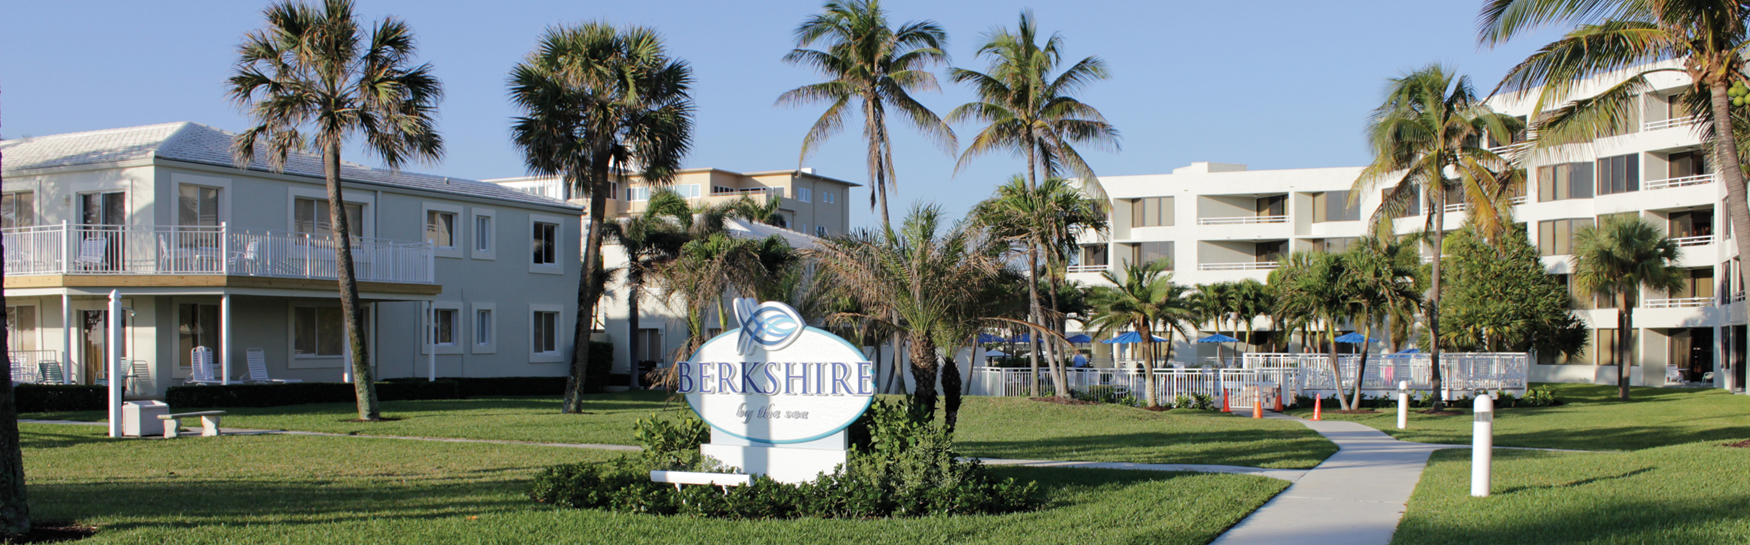 Berkshire by the Sea Ownership Opportunities